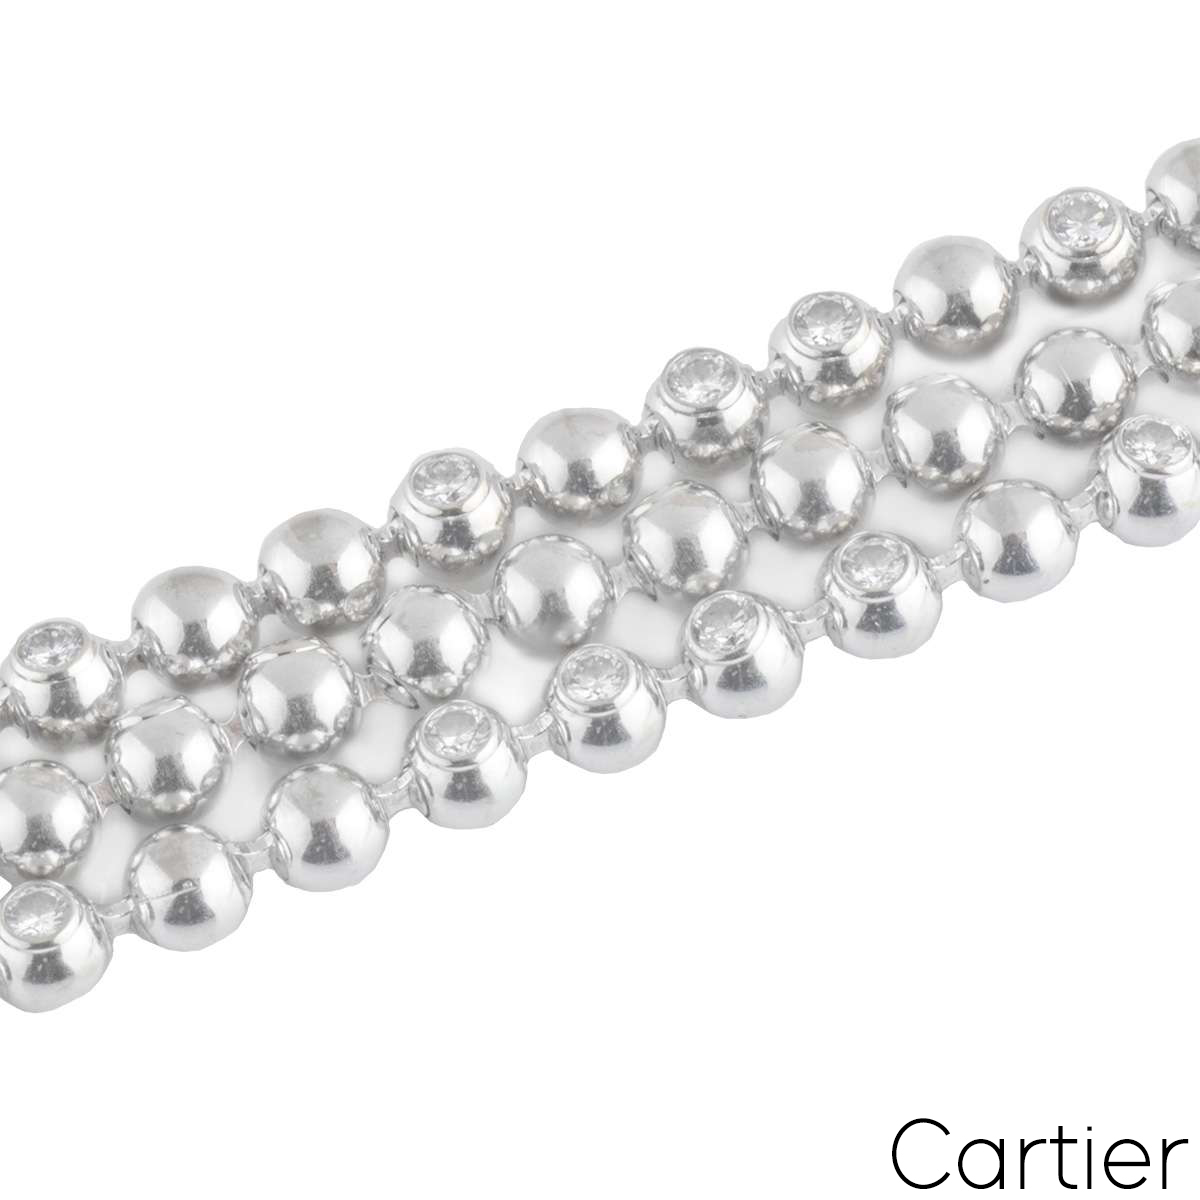 Cartier Moonlight Diamond Necklace